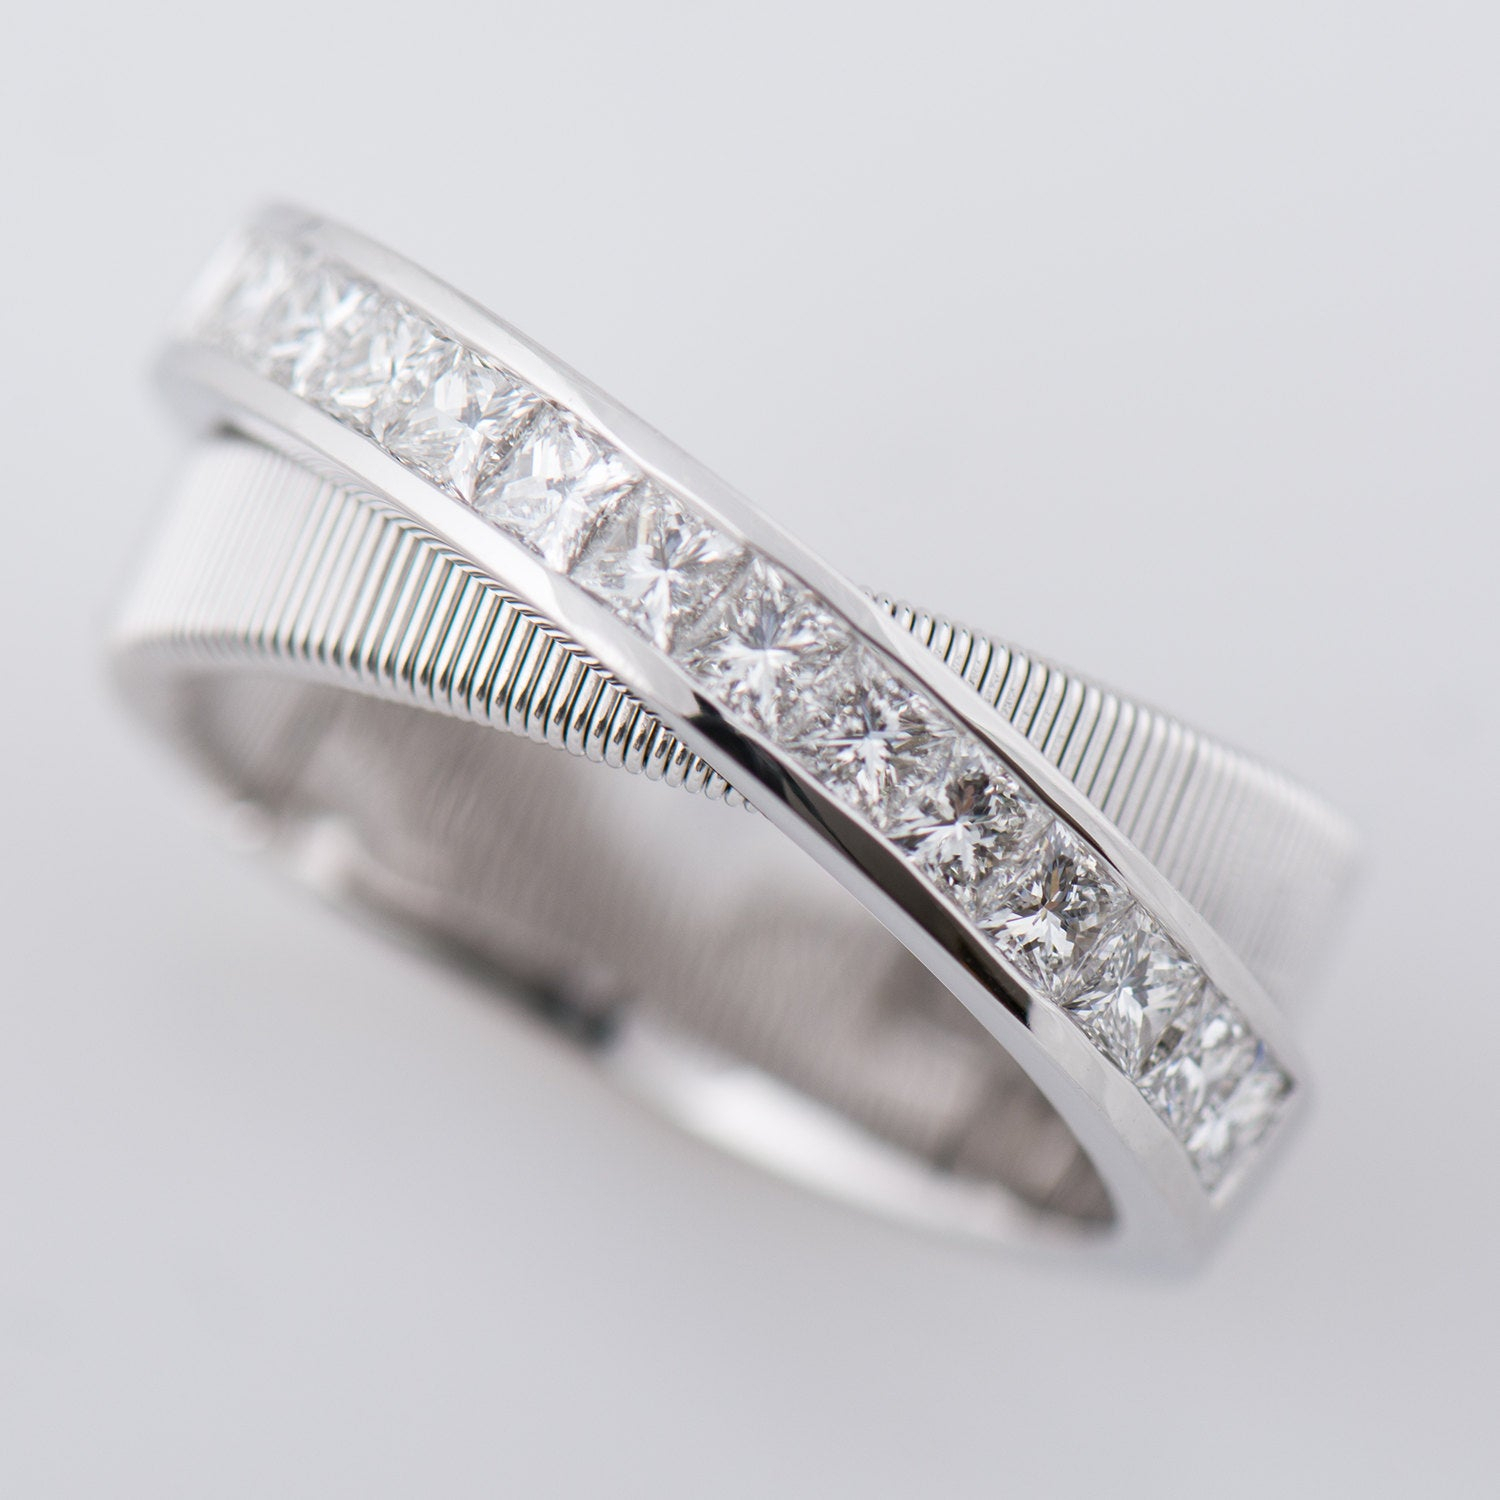 Strands 5 – 18K White Gold Ring, Eternity Ring, Infinity Ring, Princess  Diamonds Ring, Cross Ring, Anniversary Ring, Criss Cross, Coil With Regard To Current Princess Cut Diamond Criss Cross Anniversary Bands In White Gold (View 19 of 25)